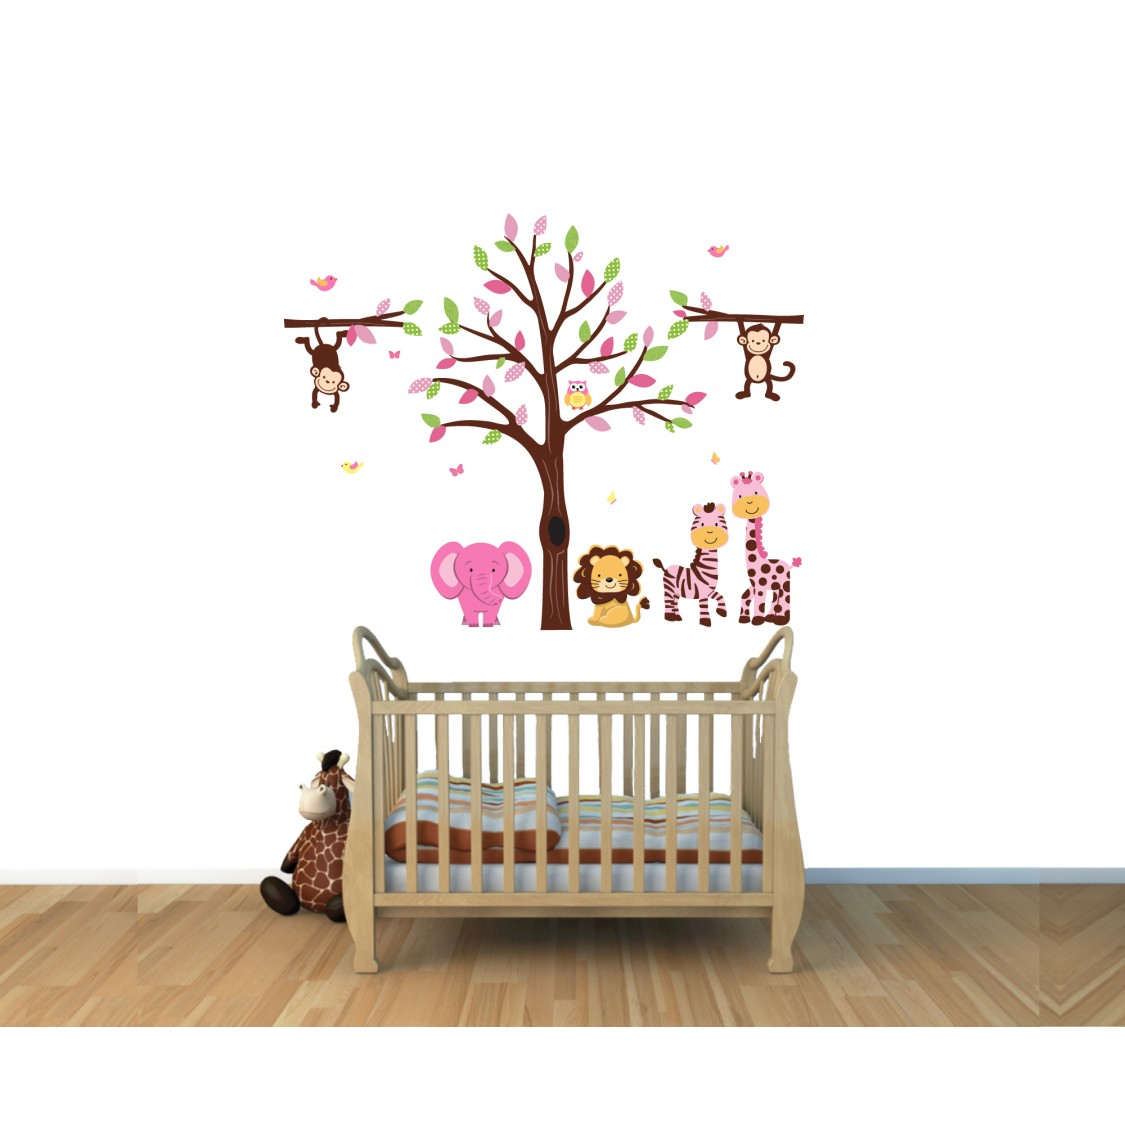 Pink Jungle Wall Decal With Elephant Wall Mural For Children